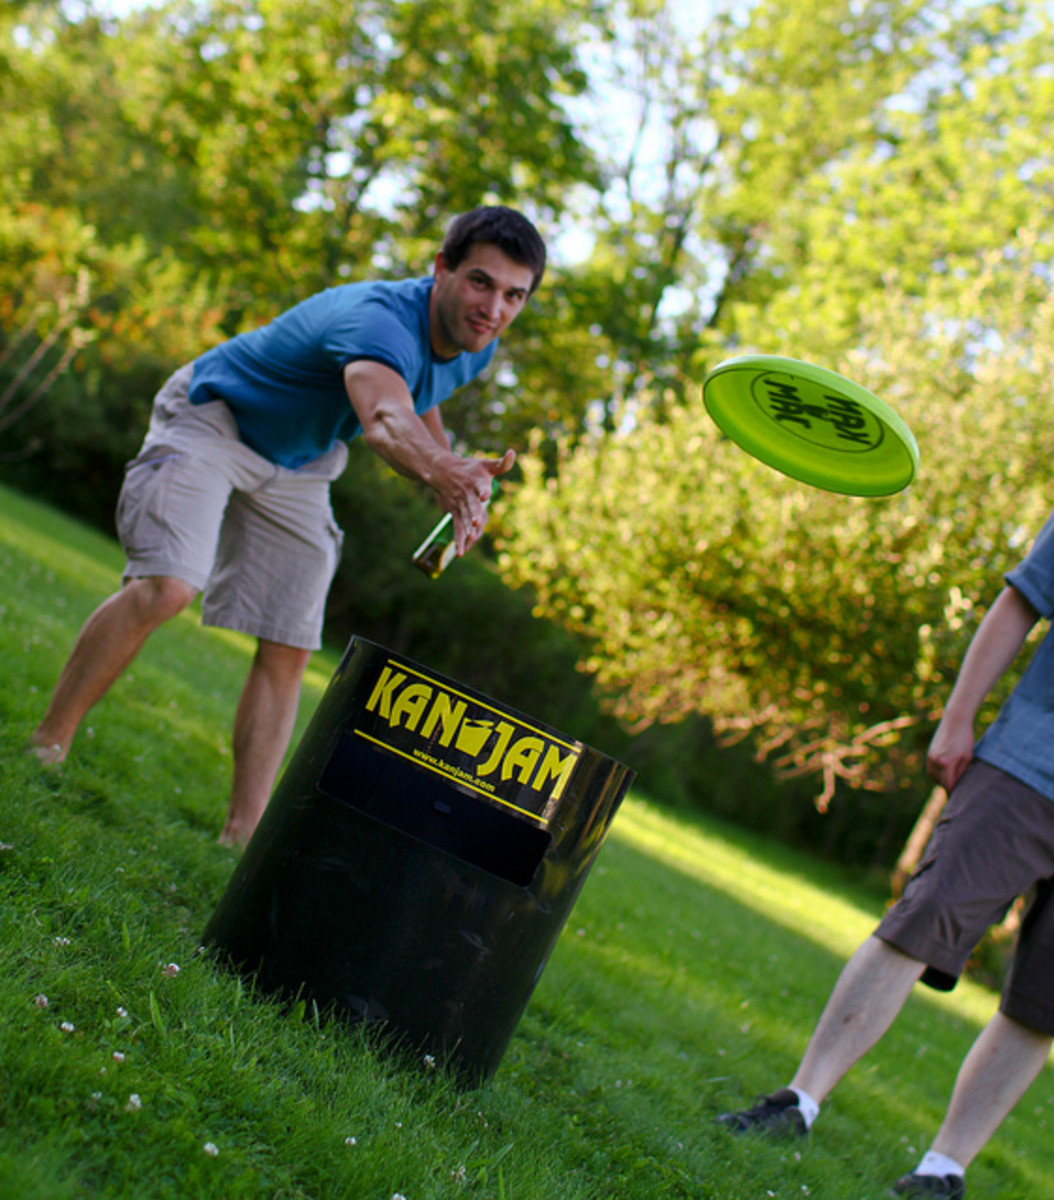 outdoor lawn games for adults backyard fun in the sun